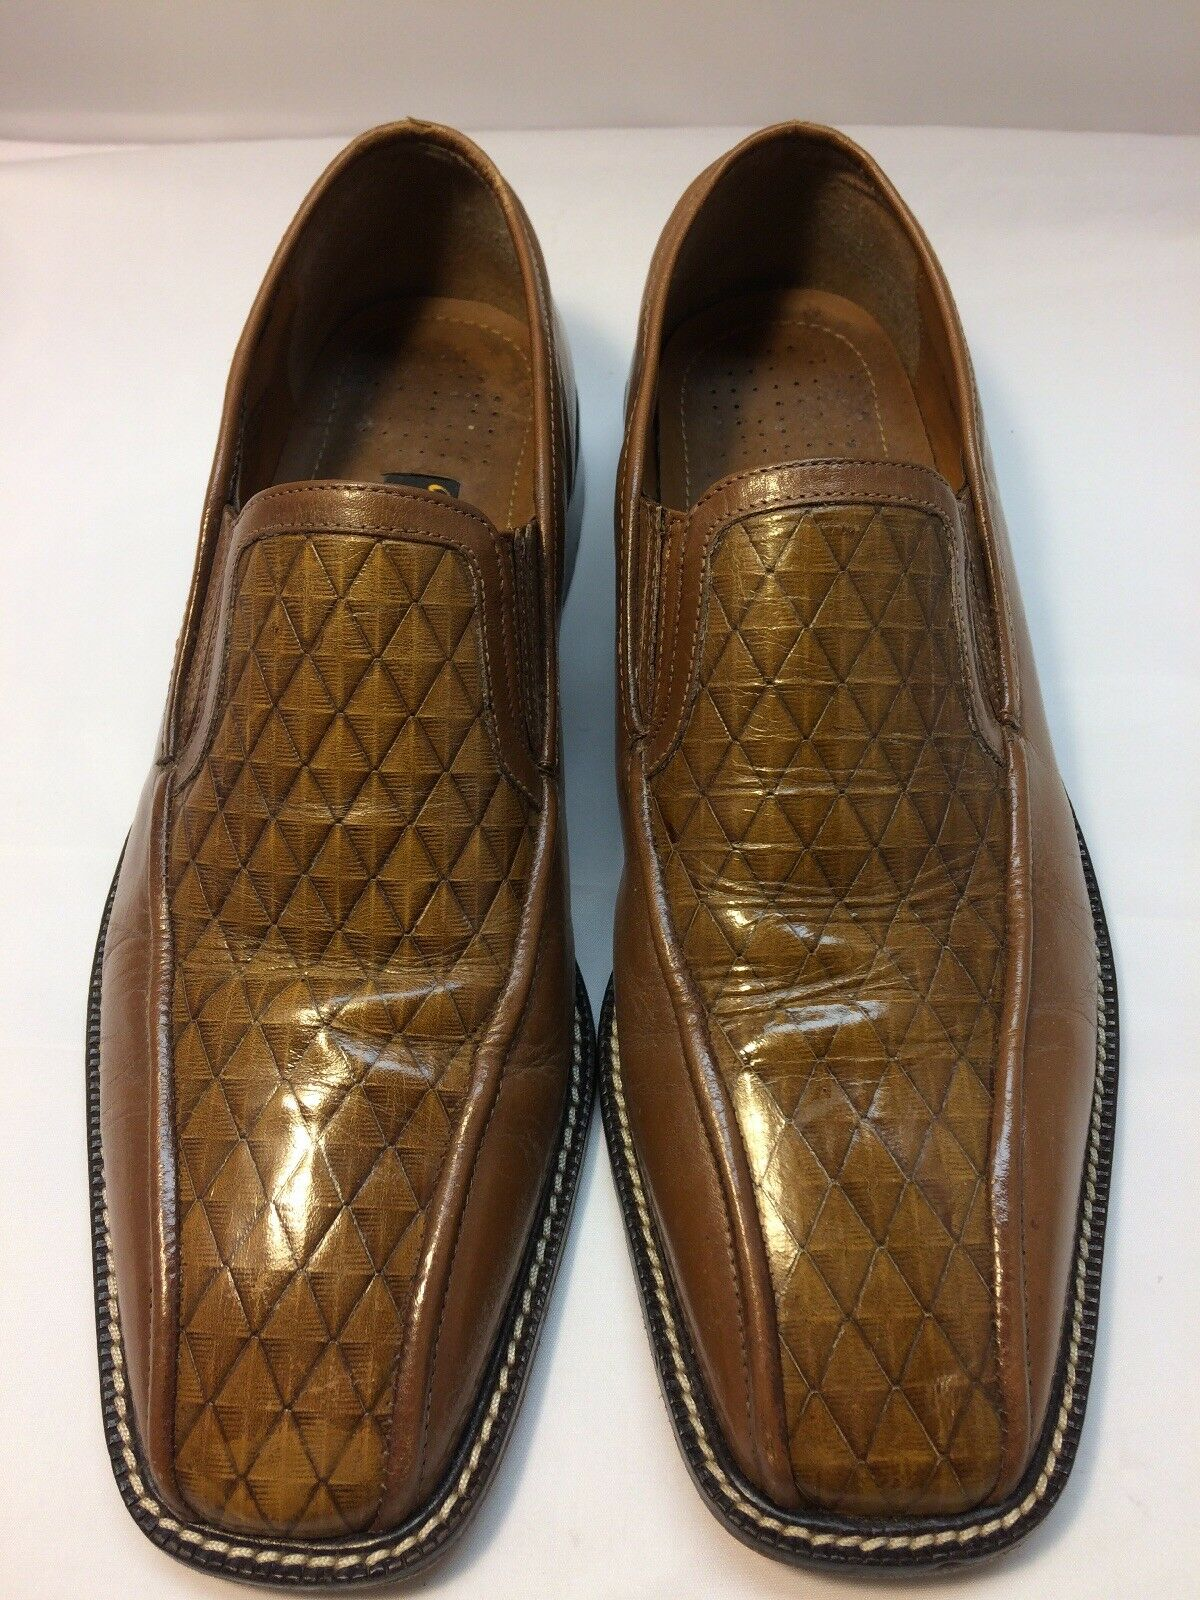 STACY ADAMS Brown Leather Square Toe Slip-On Men's Dress shoes Size 13 M